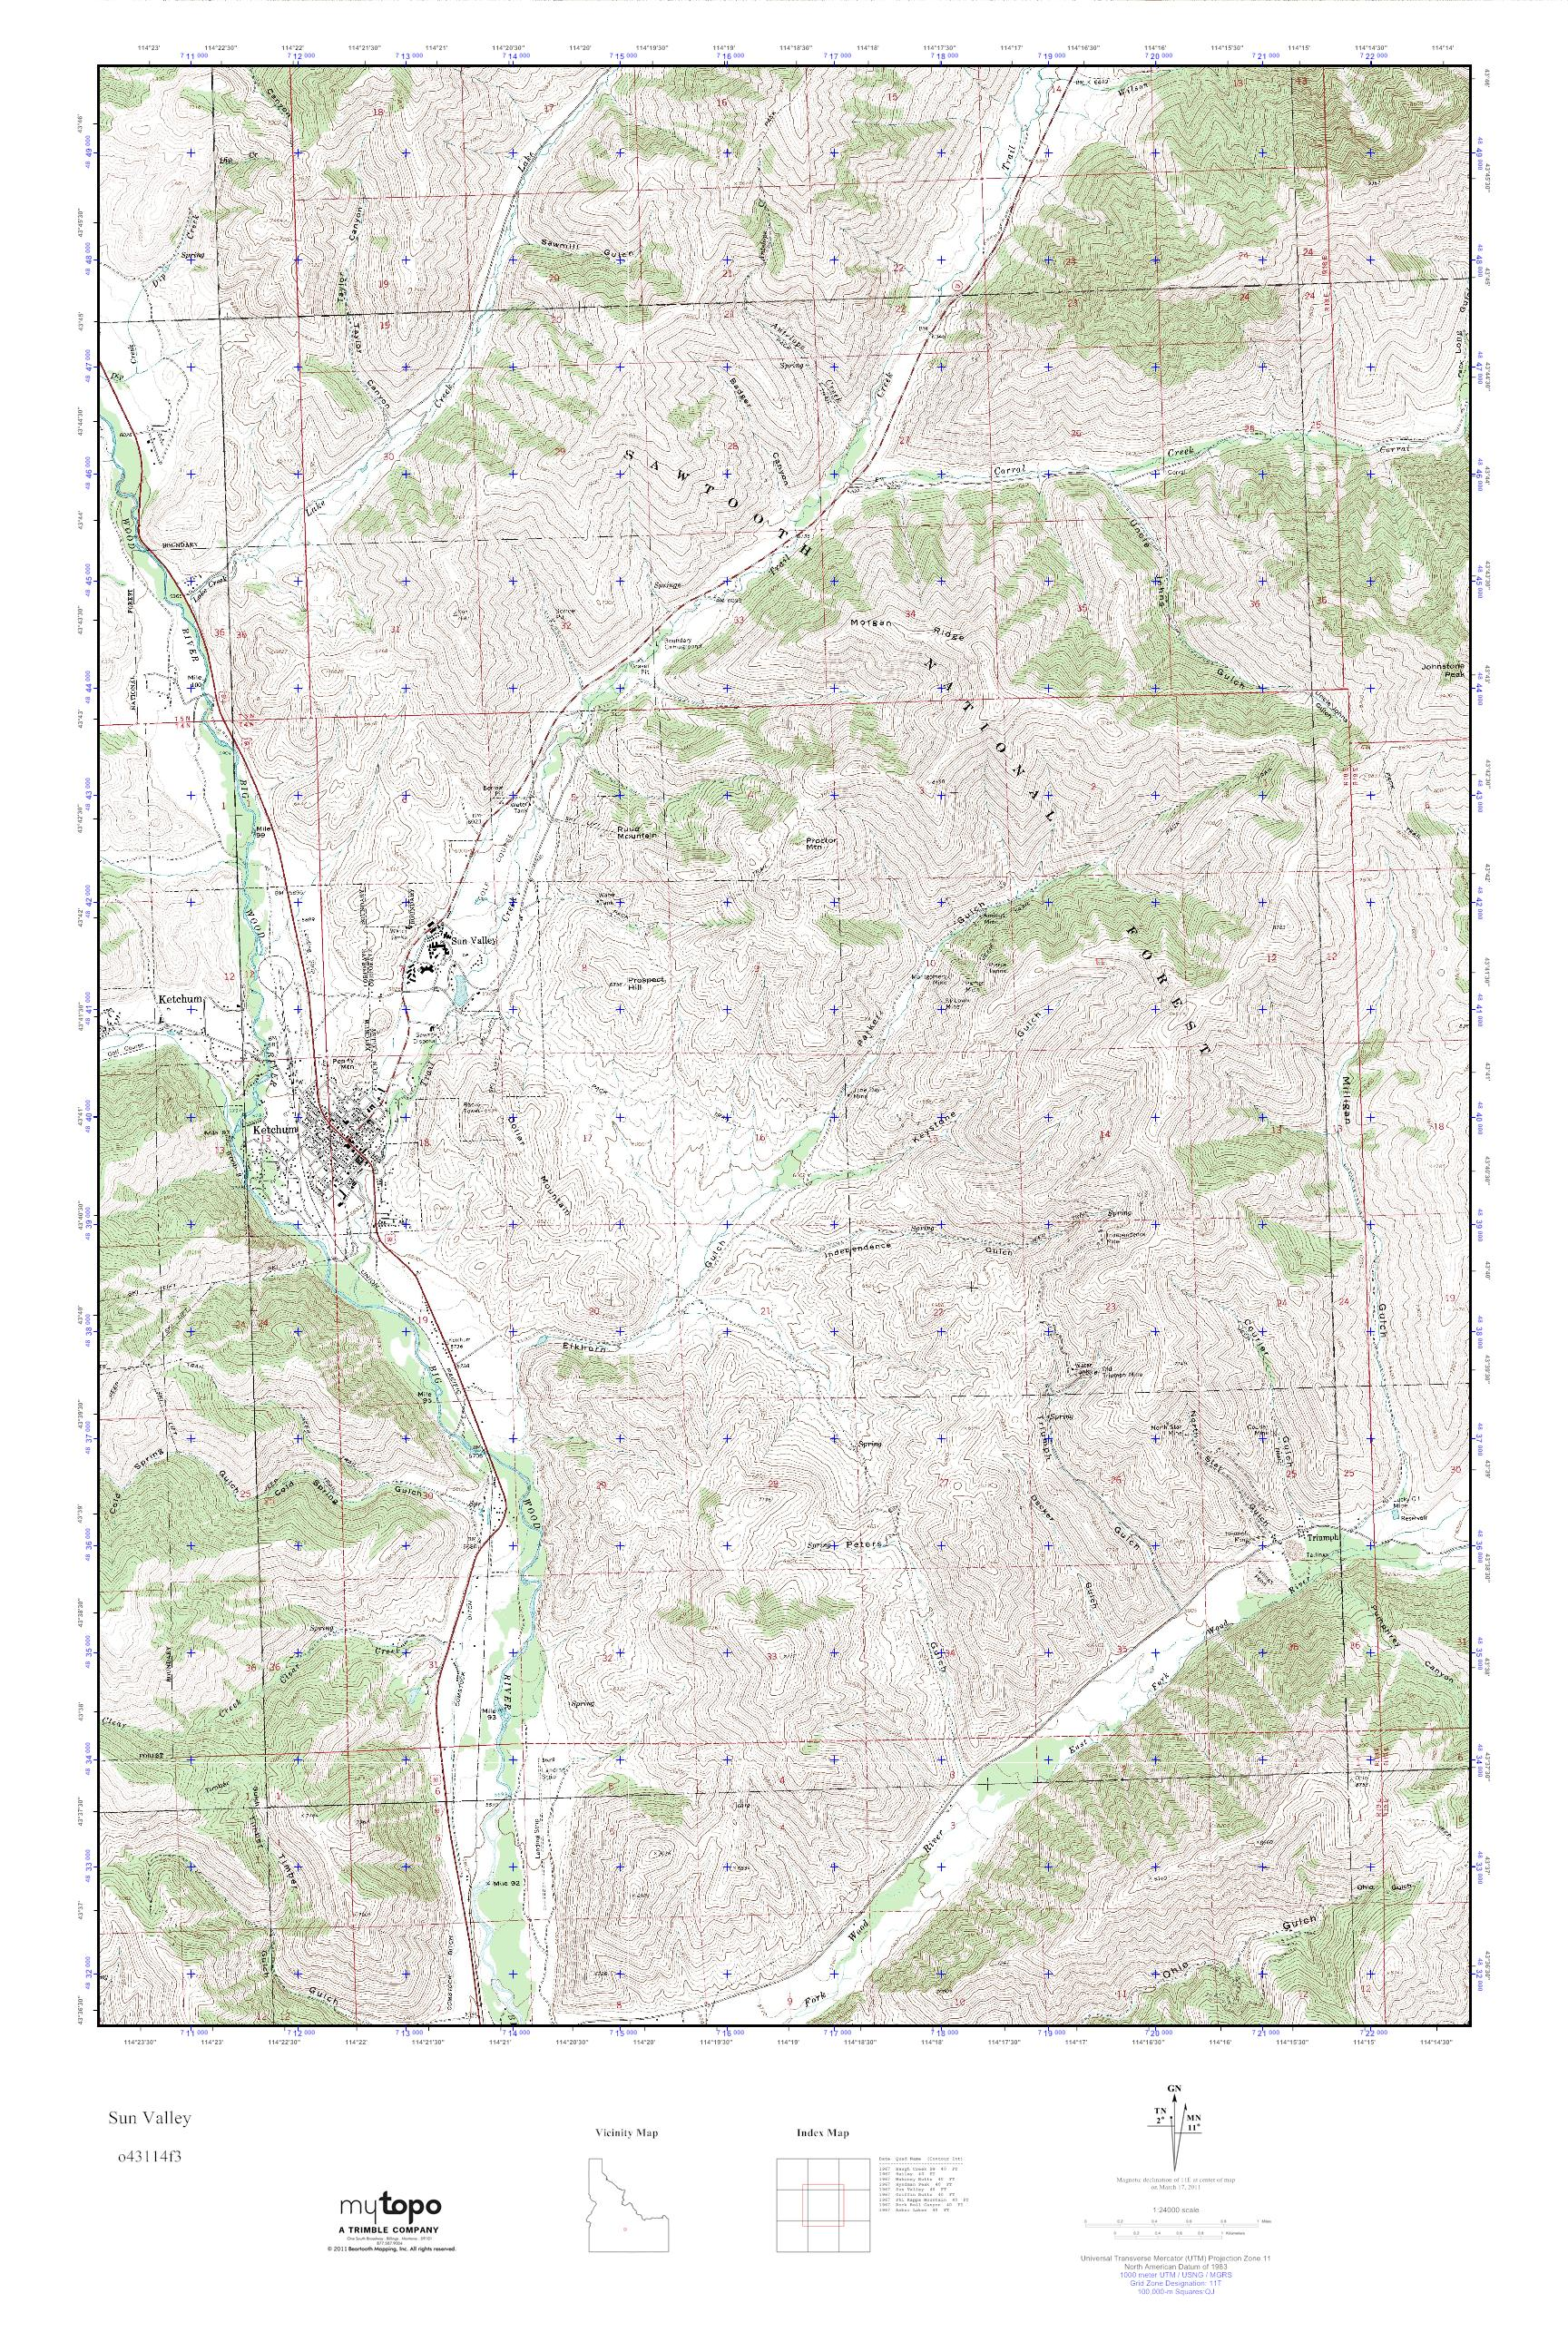 MyTopo Sun Valley, Idaho USGS Quad Topo Map